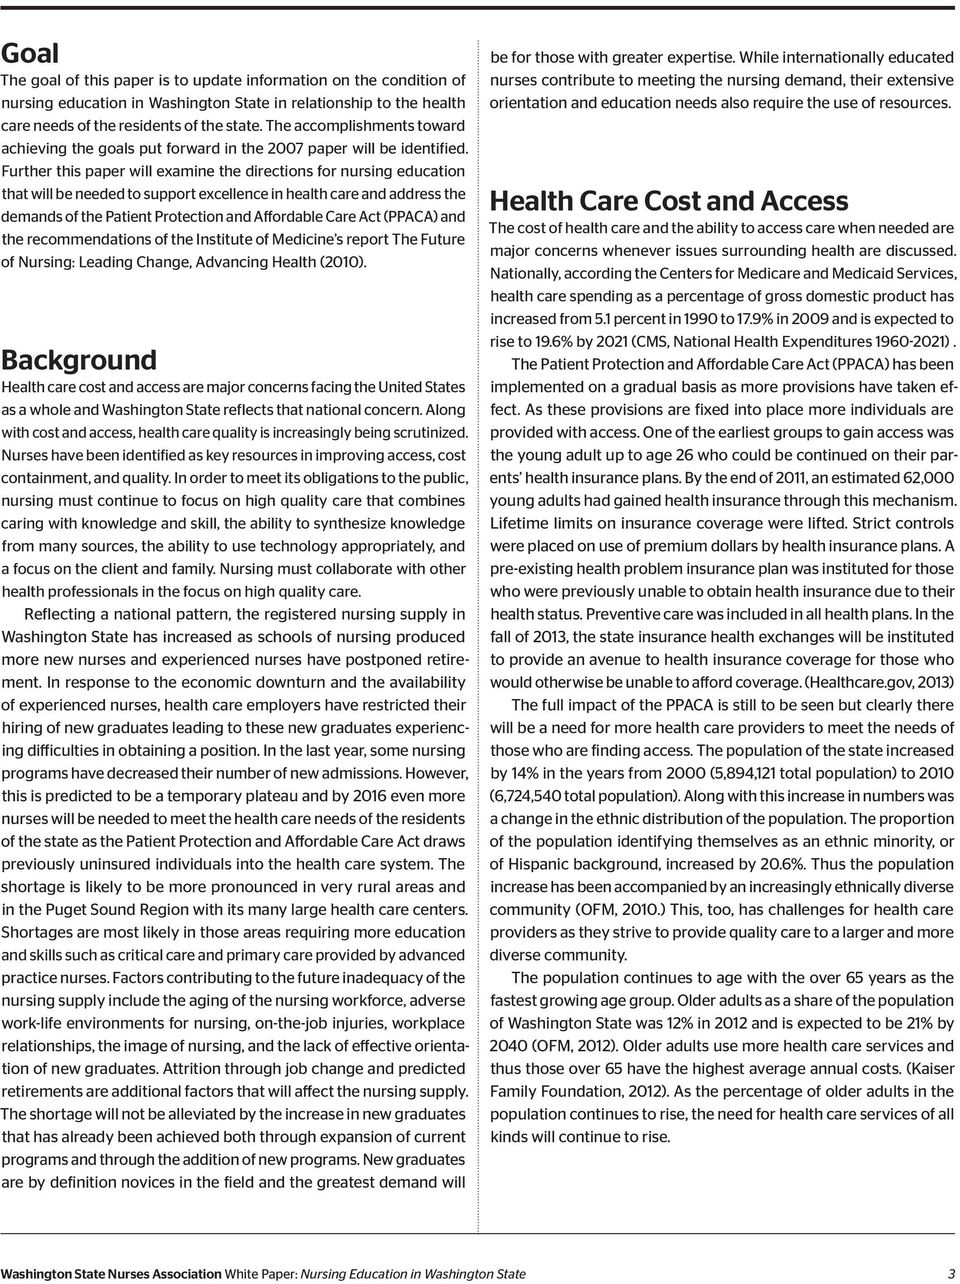 Further this paper will examine the directions for nursing education that will be needed to support excellence in health care and address the demands of the Patient Protection and Affordable Care Act